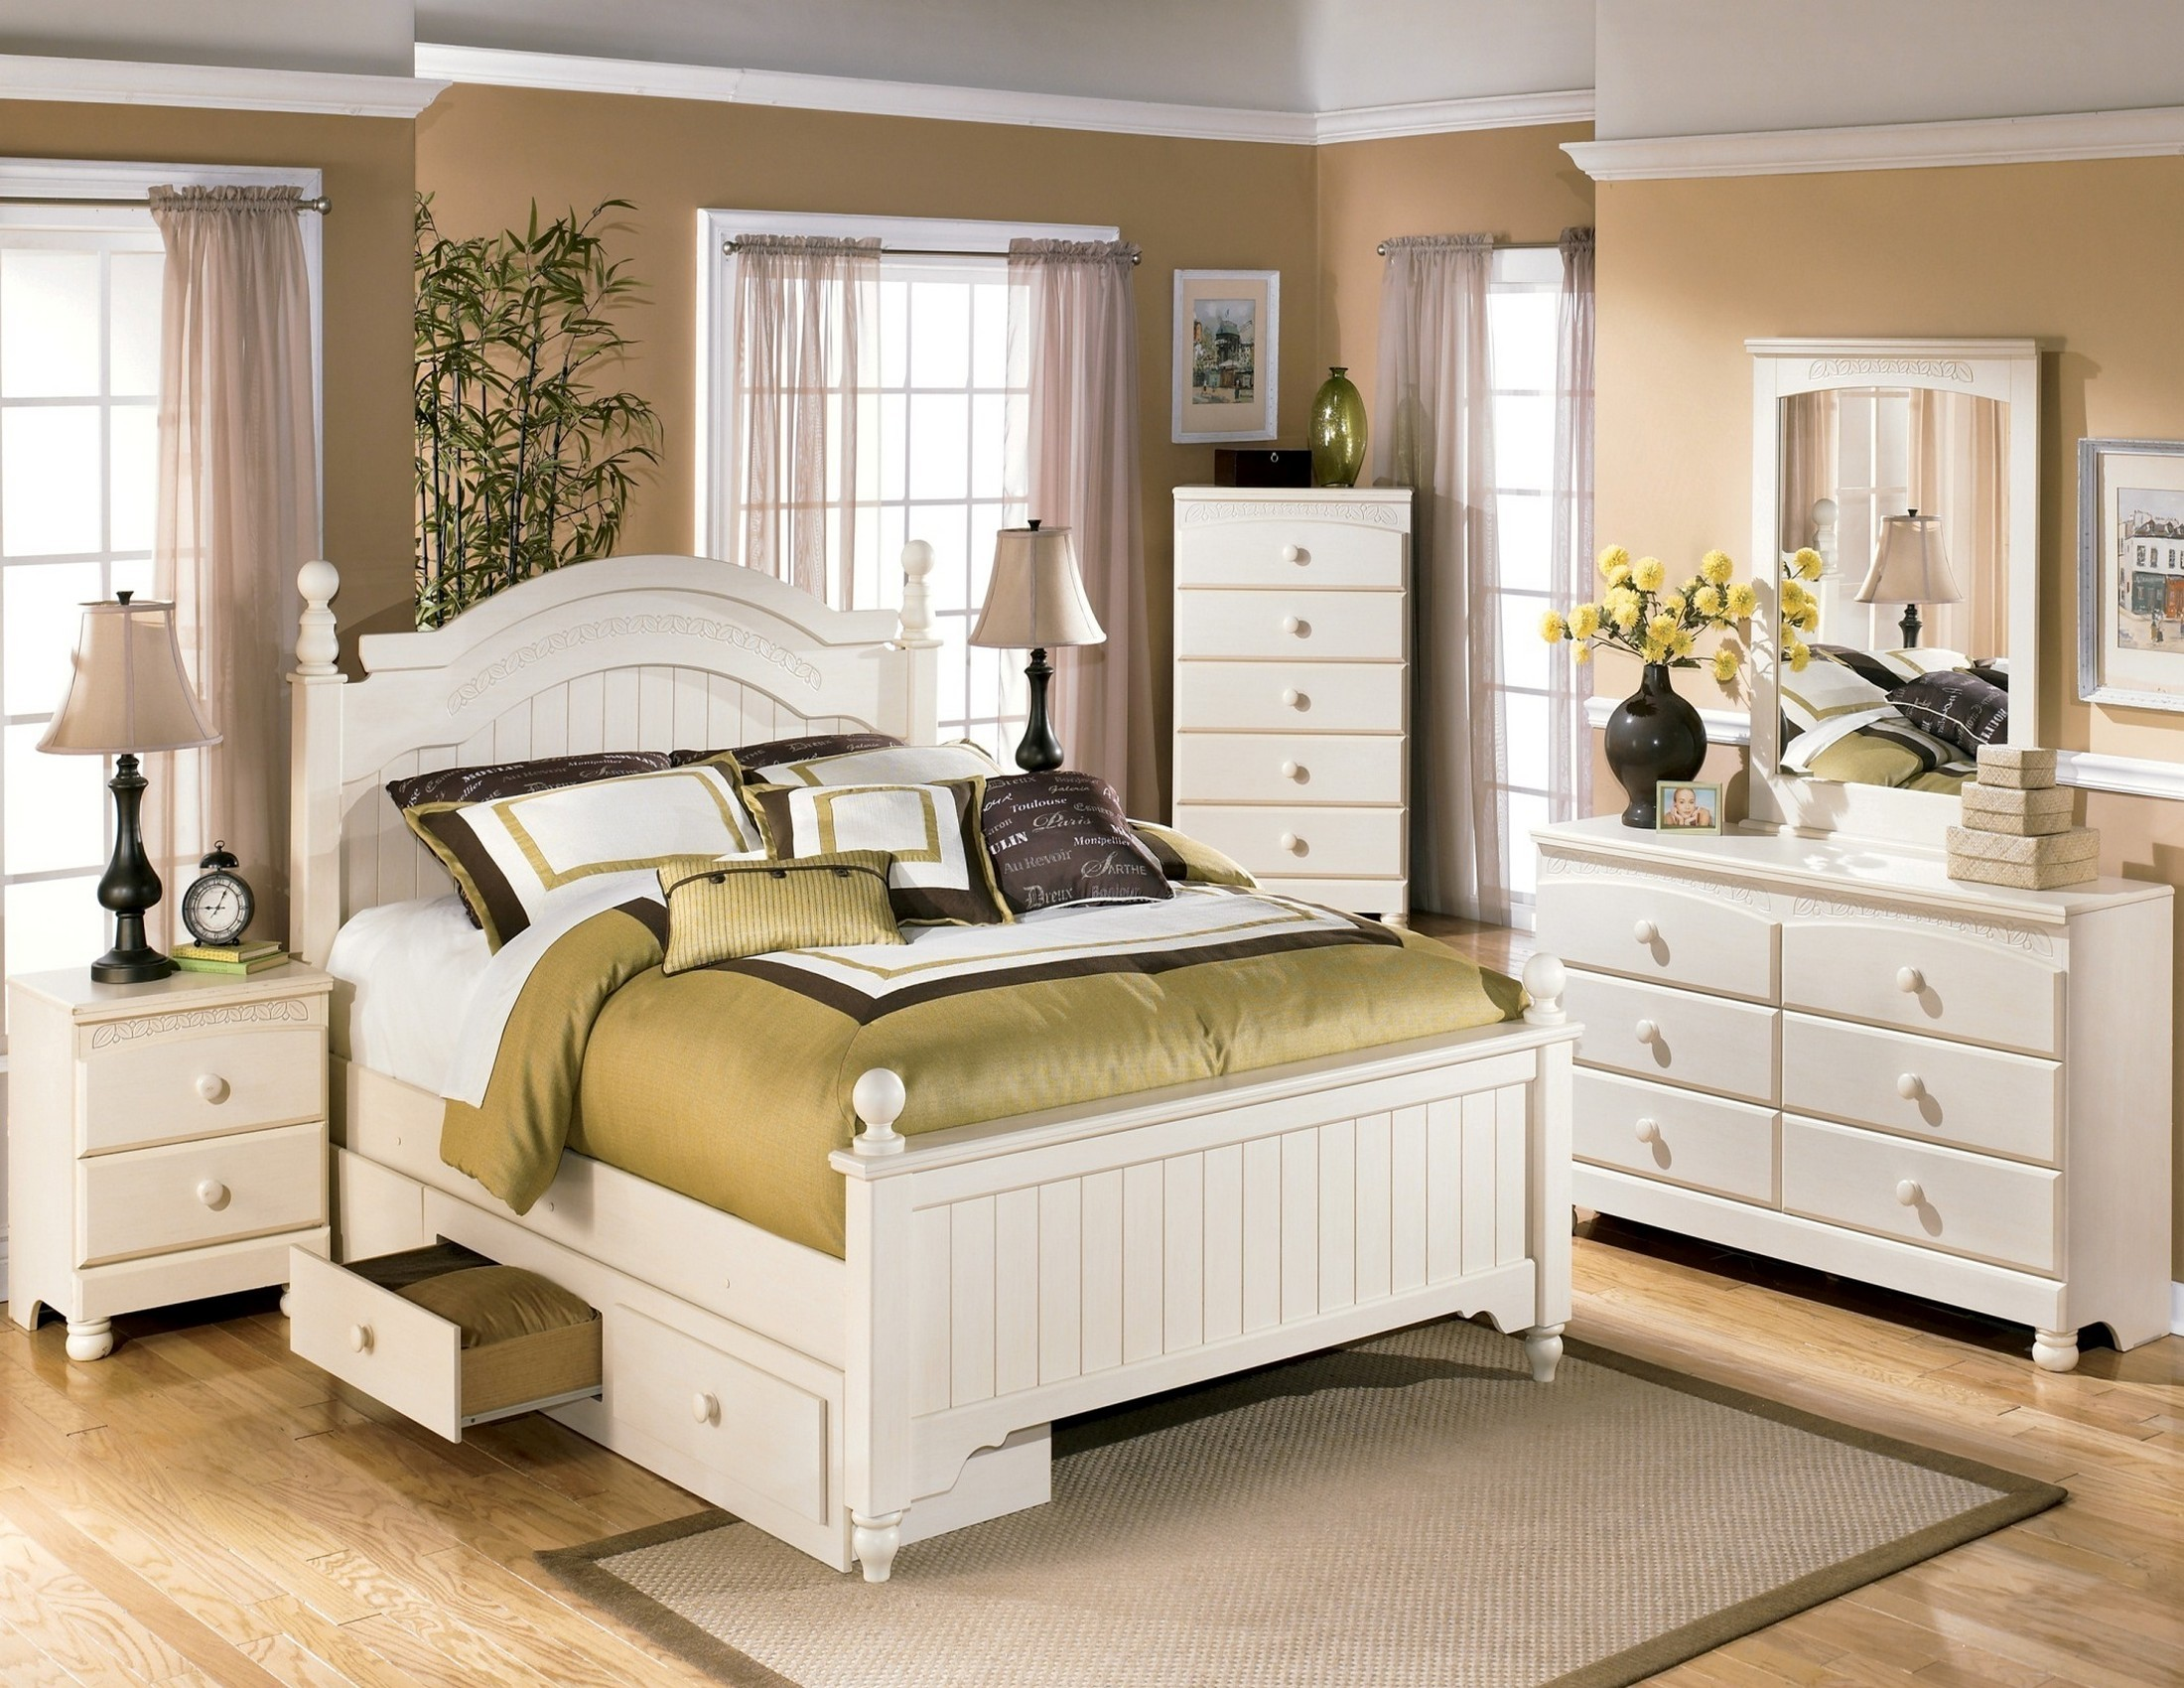 Cottage retreat youth poster storage bedroom set from - Cottage retreat bedroom furniture ...